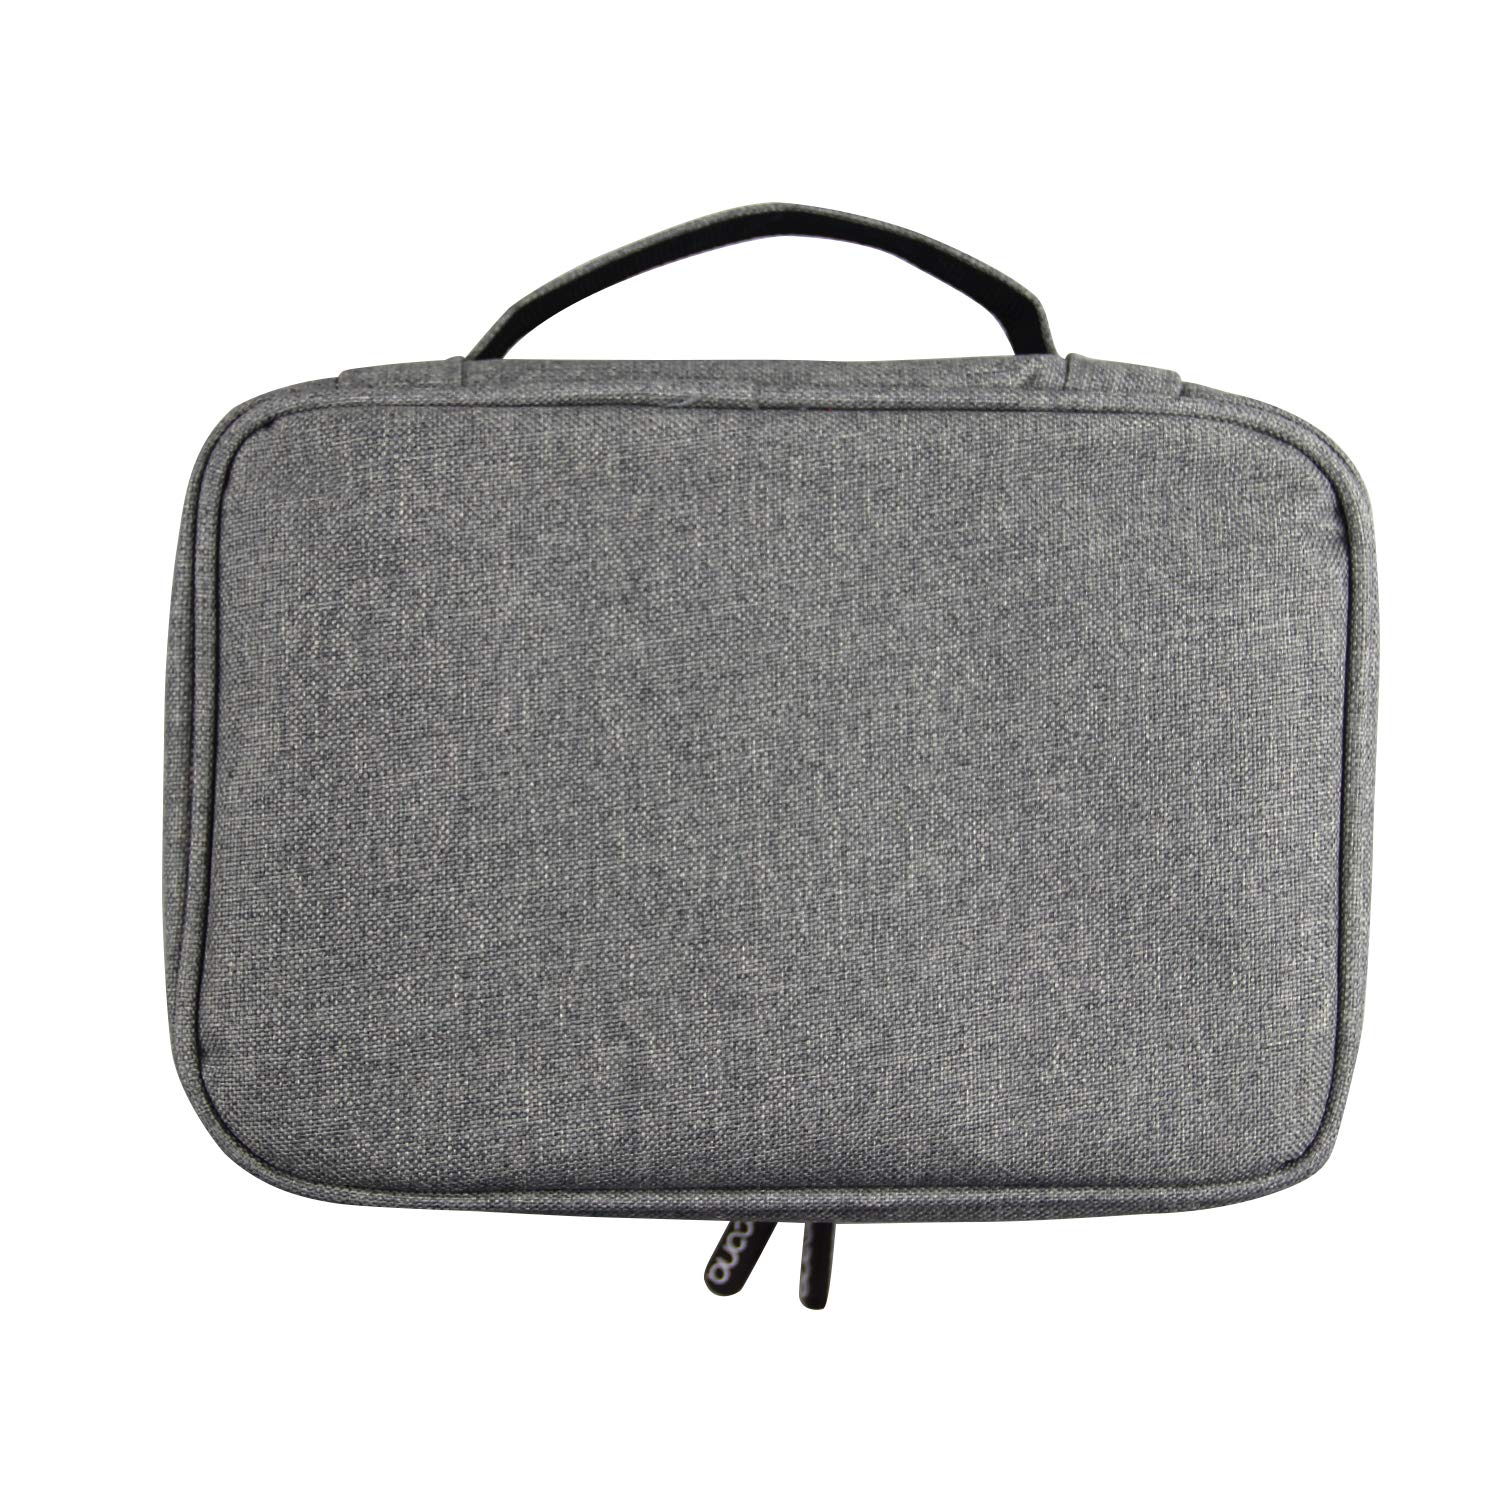 Electronic Organizer, Double Layer Travel Computer Cable Bag for Cord, Battery, Camera, Ipad Air (Gray)